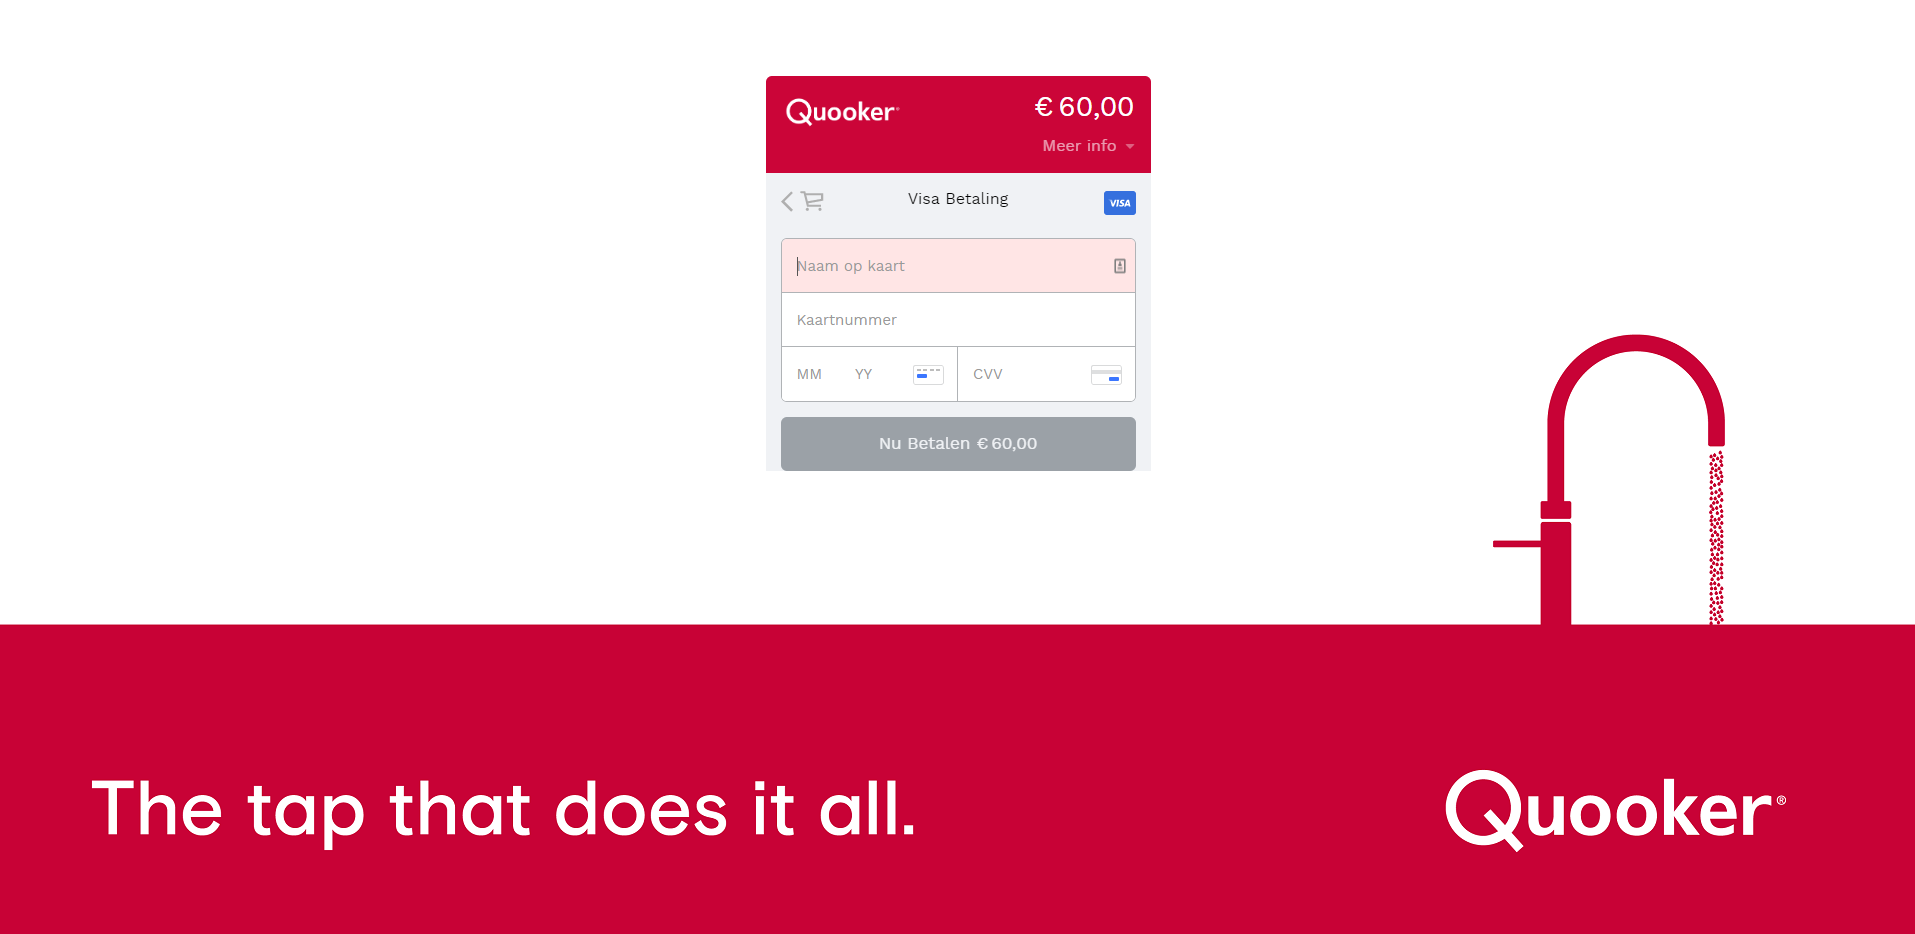 Quooker smart checkout